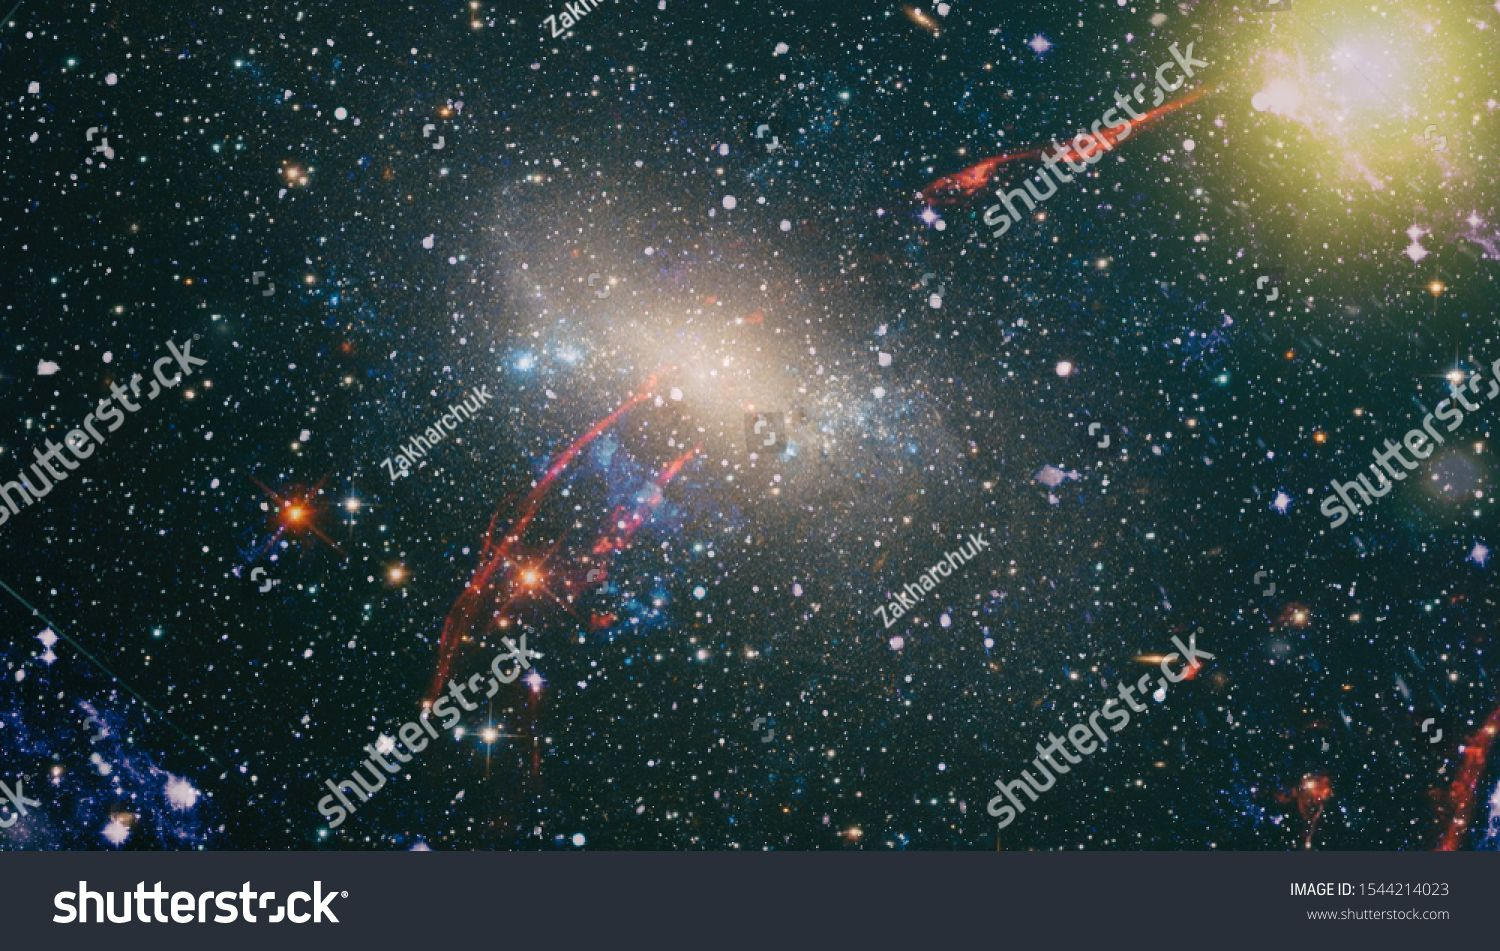 Deep Space Science Fiction Fantasy In High Resolution Ideal For Wallpaper Elements Of This Image Furnished By Science Fiction Fantasy Science Fiction Fiction